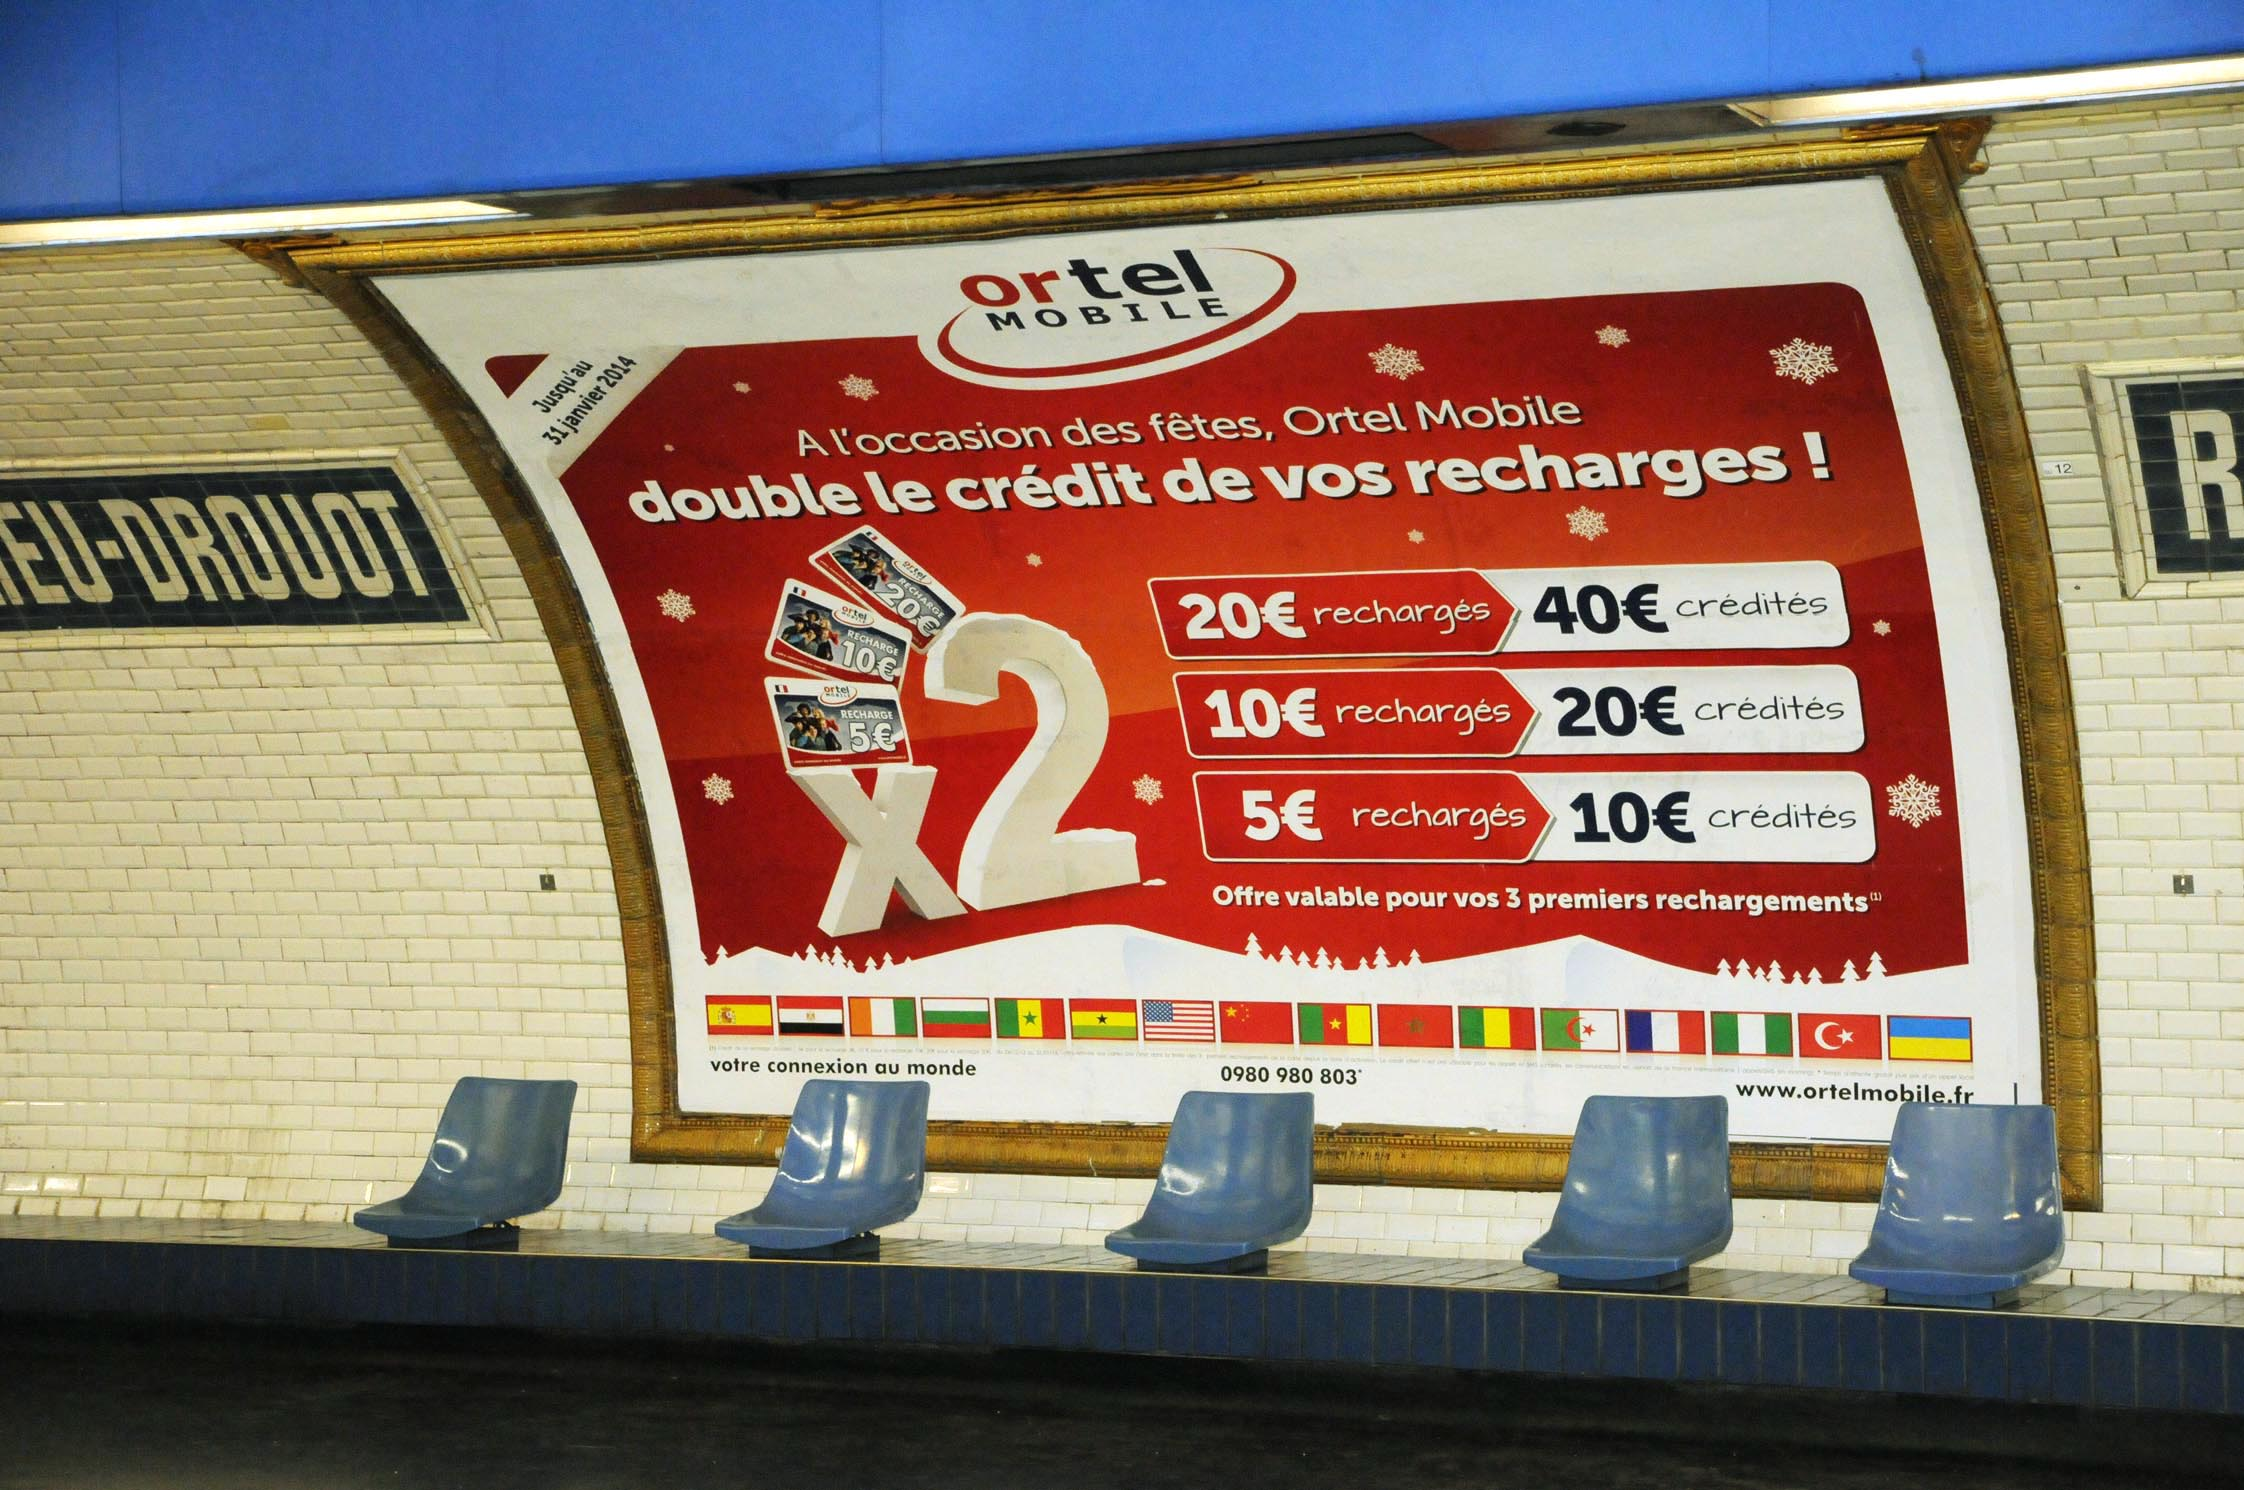 Paris_Metro_Ortel_France_Advertising_2